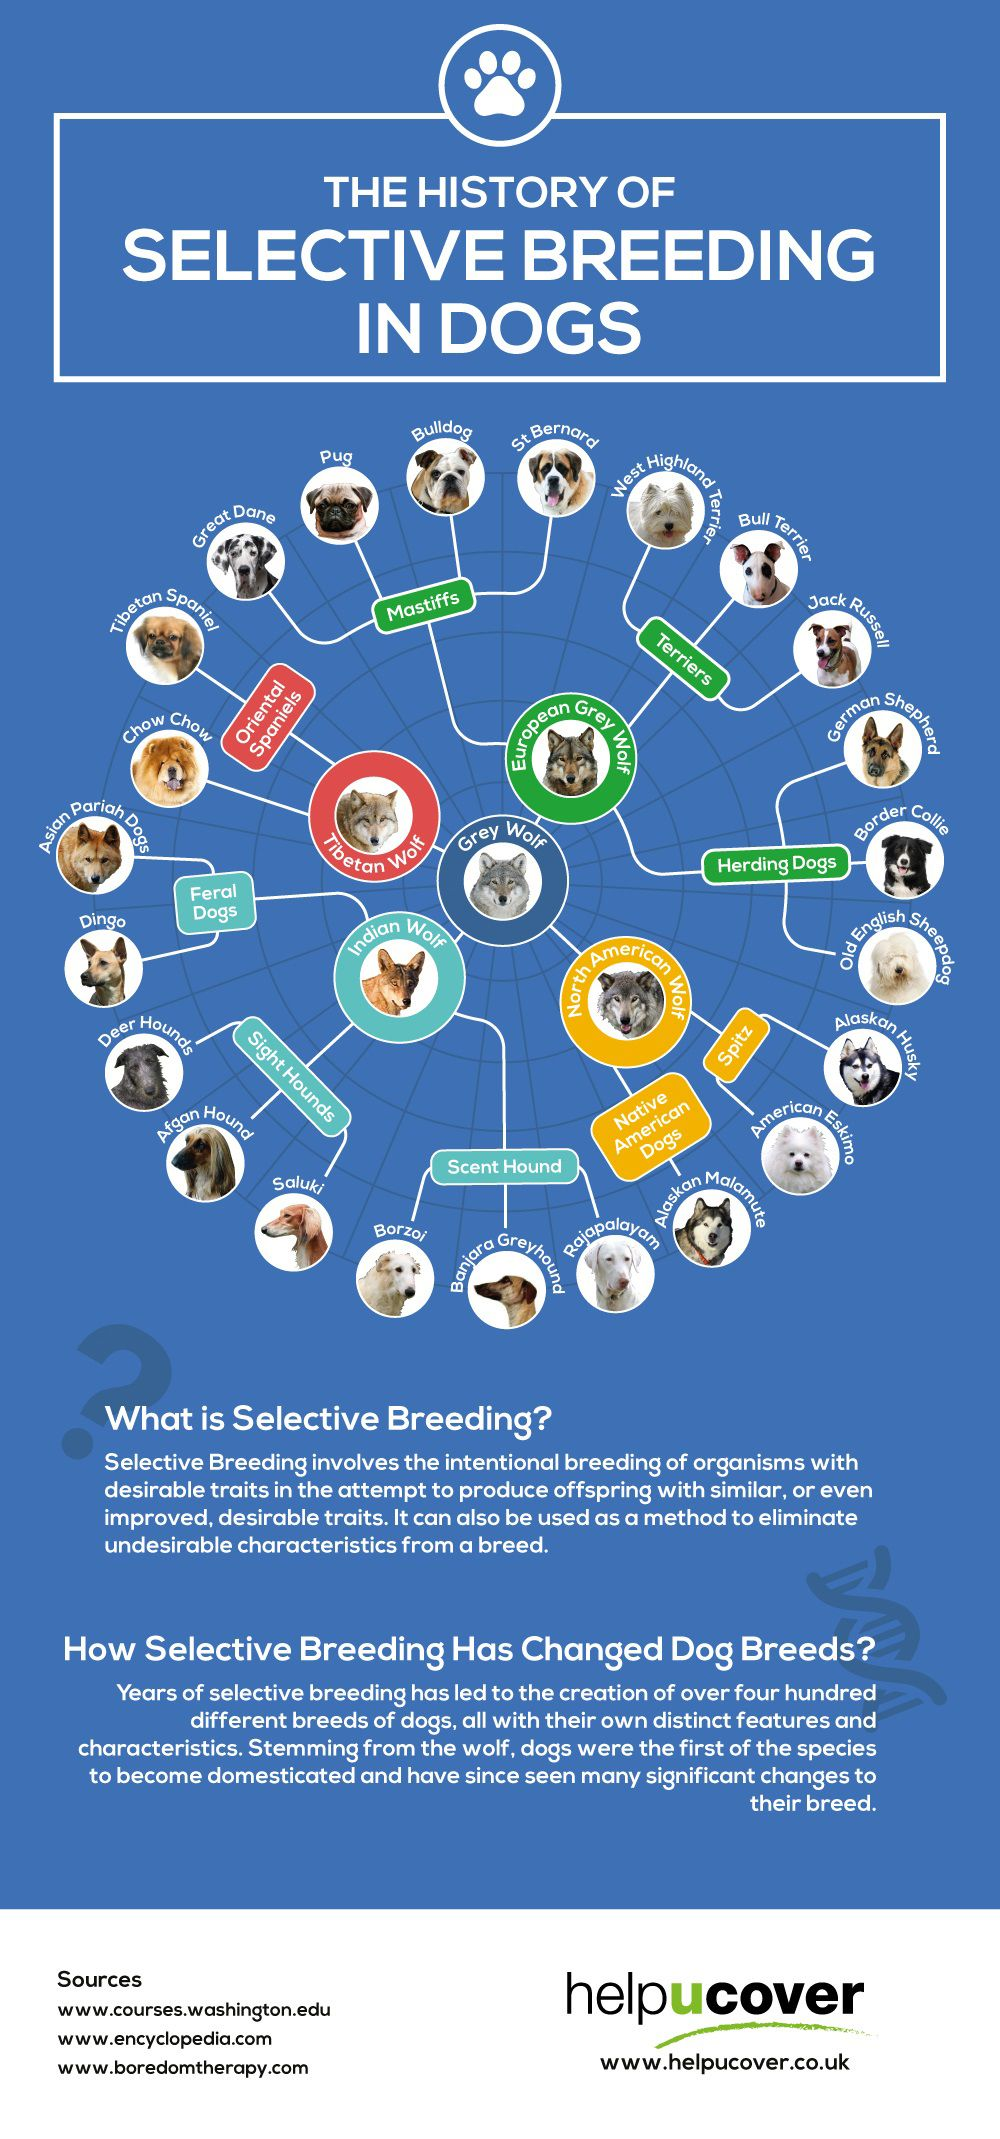 The History of Selective Breeding in Dogs #Infographic